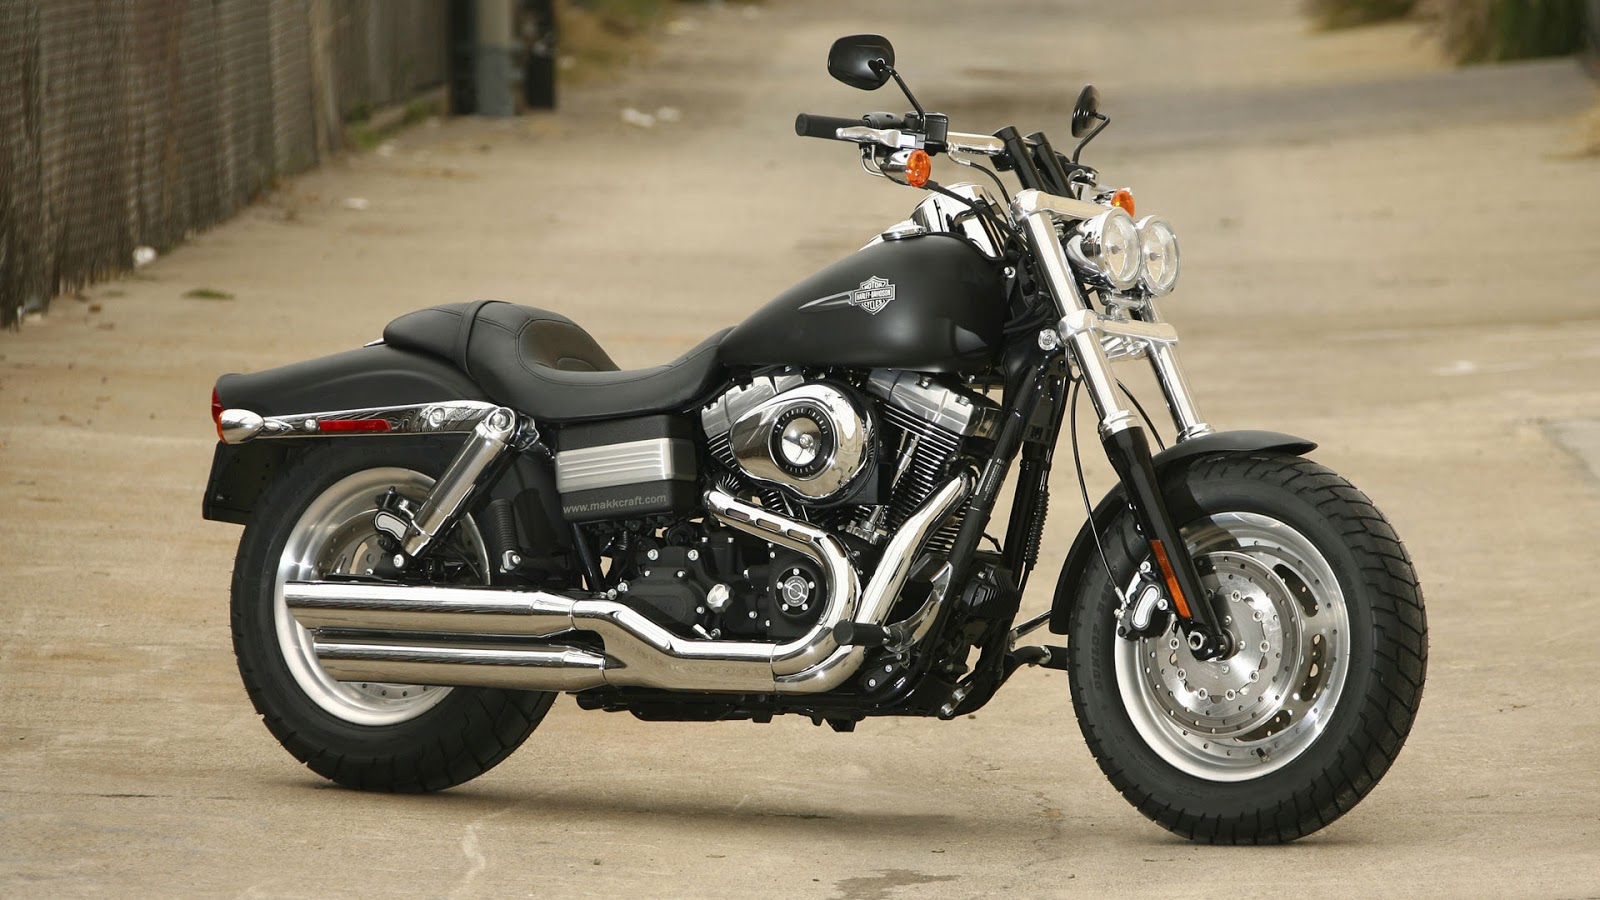 harley davidson fat bob hd wallpapers high definition free background. Black Bedroom Furniture Sets. Home Design Ideas